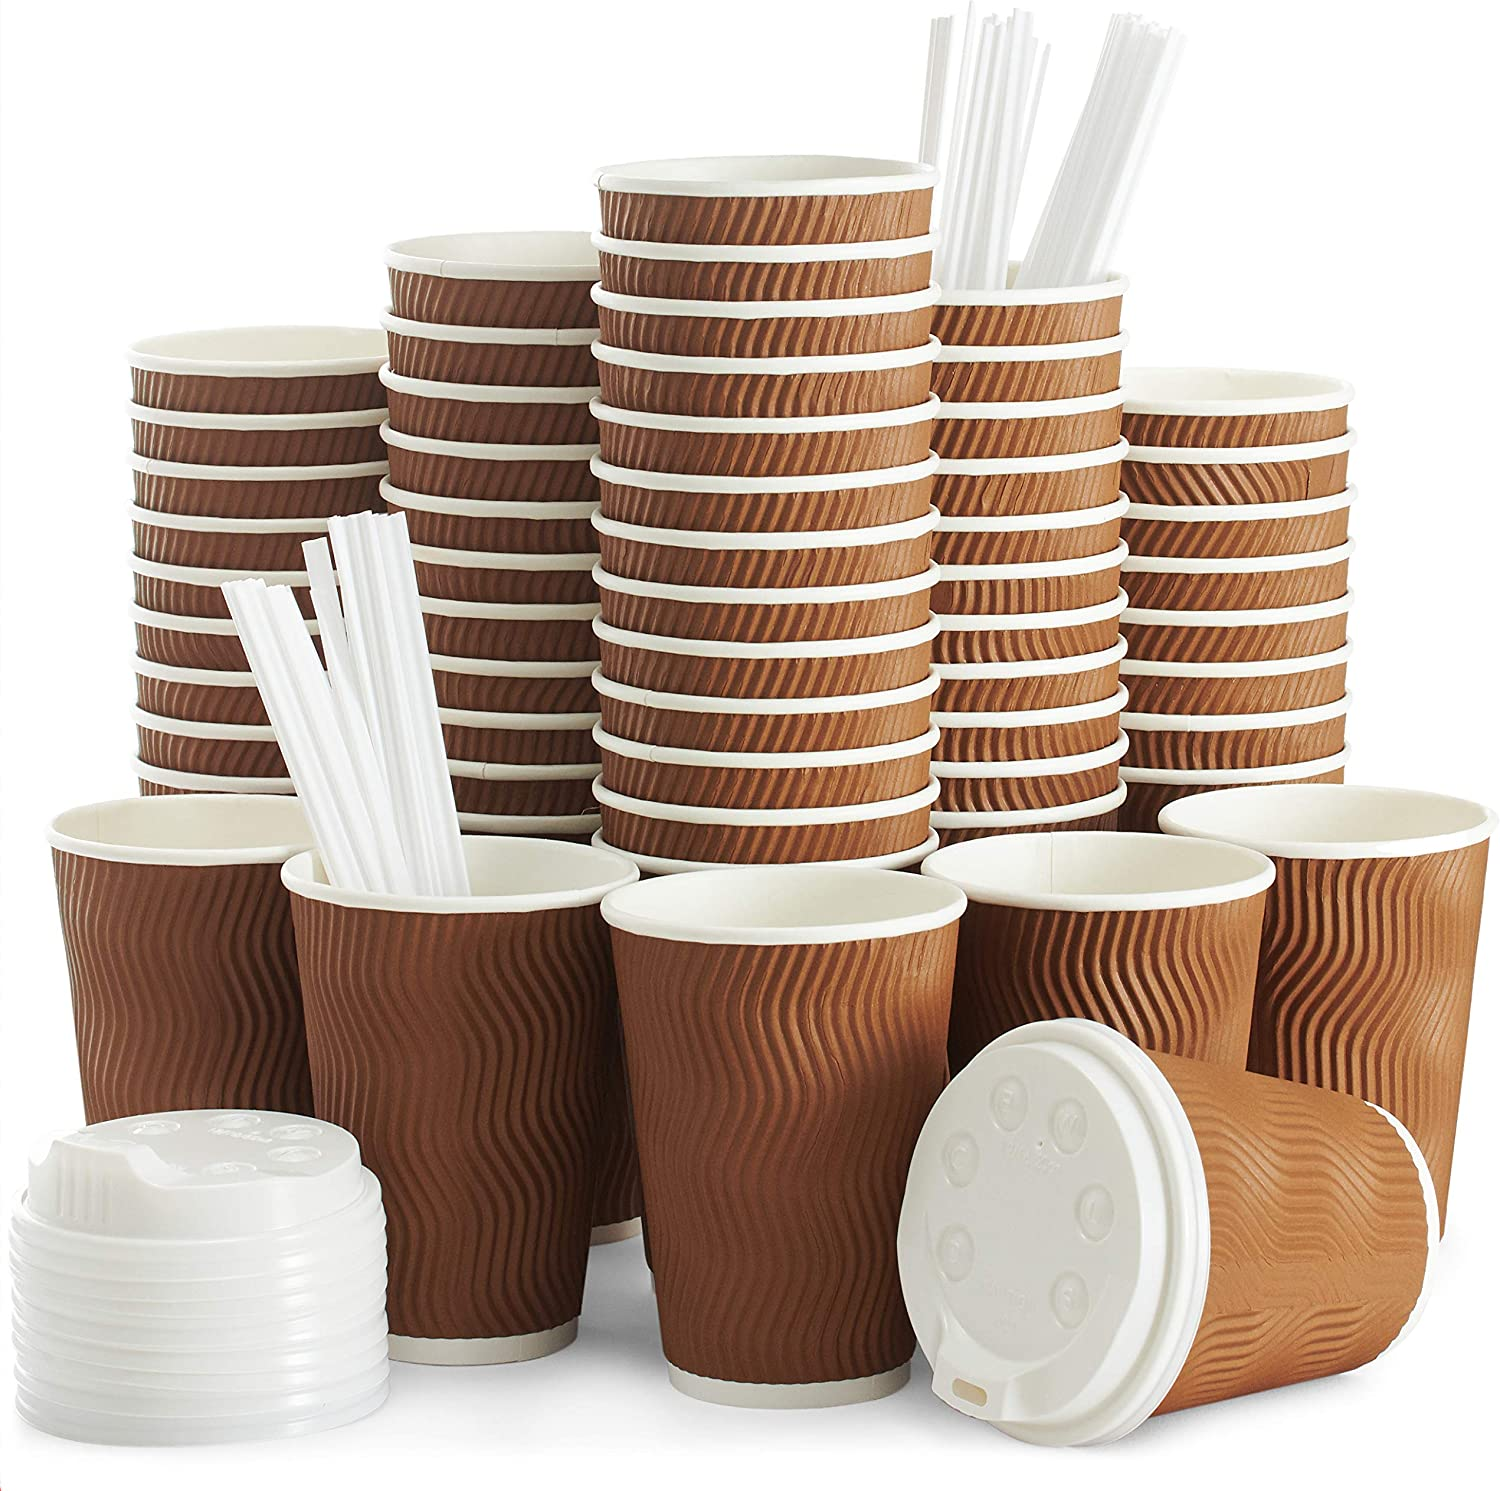 Insulated Disposable Coffee Cups with Lids & Straws 12 oz, 100 Packs - Paper Cups for Hot Beverage Drinks To Go Tea Coffee Home Office Car Coffee Shop Party (Brown)